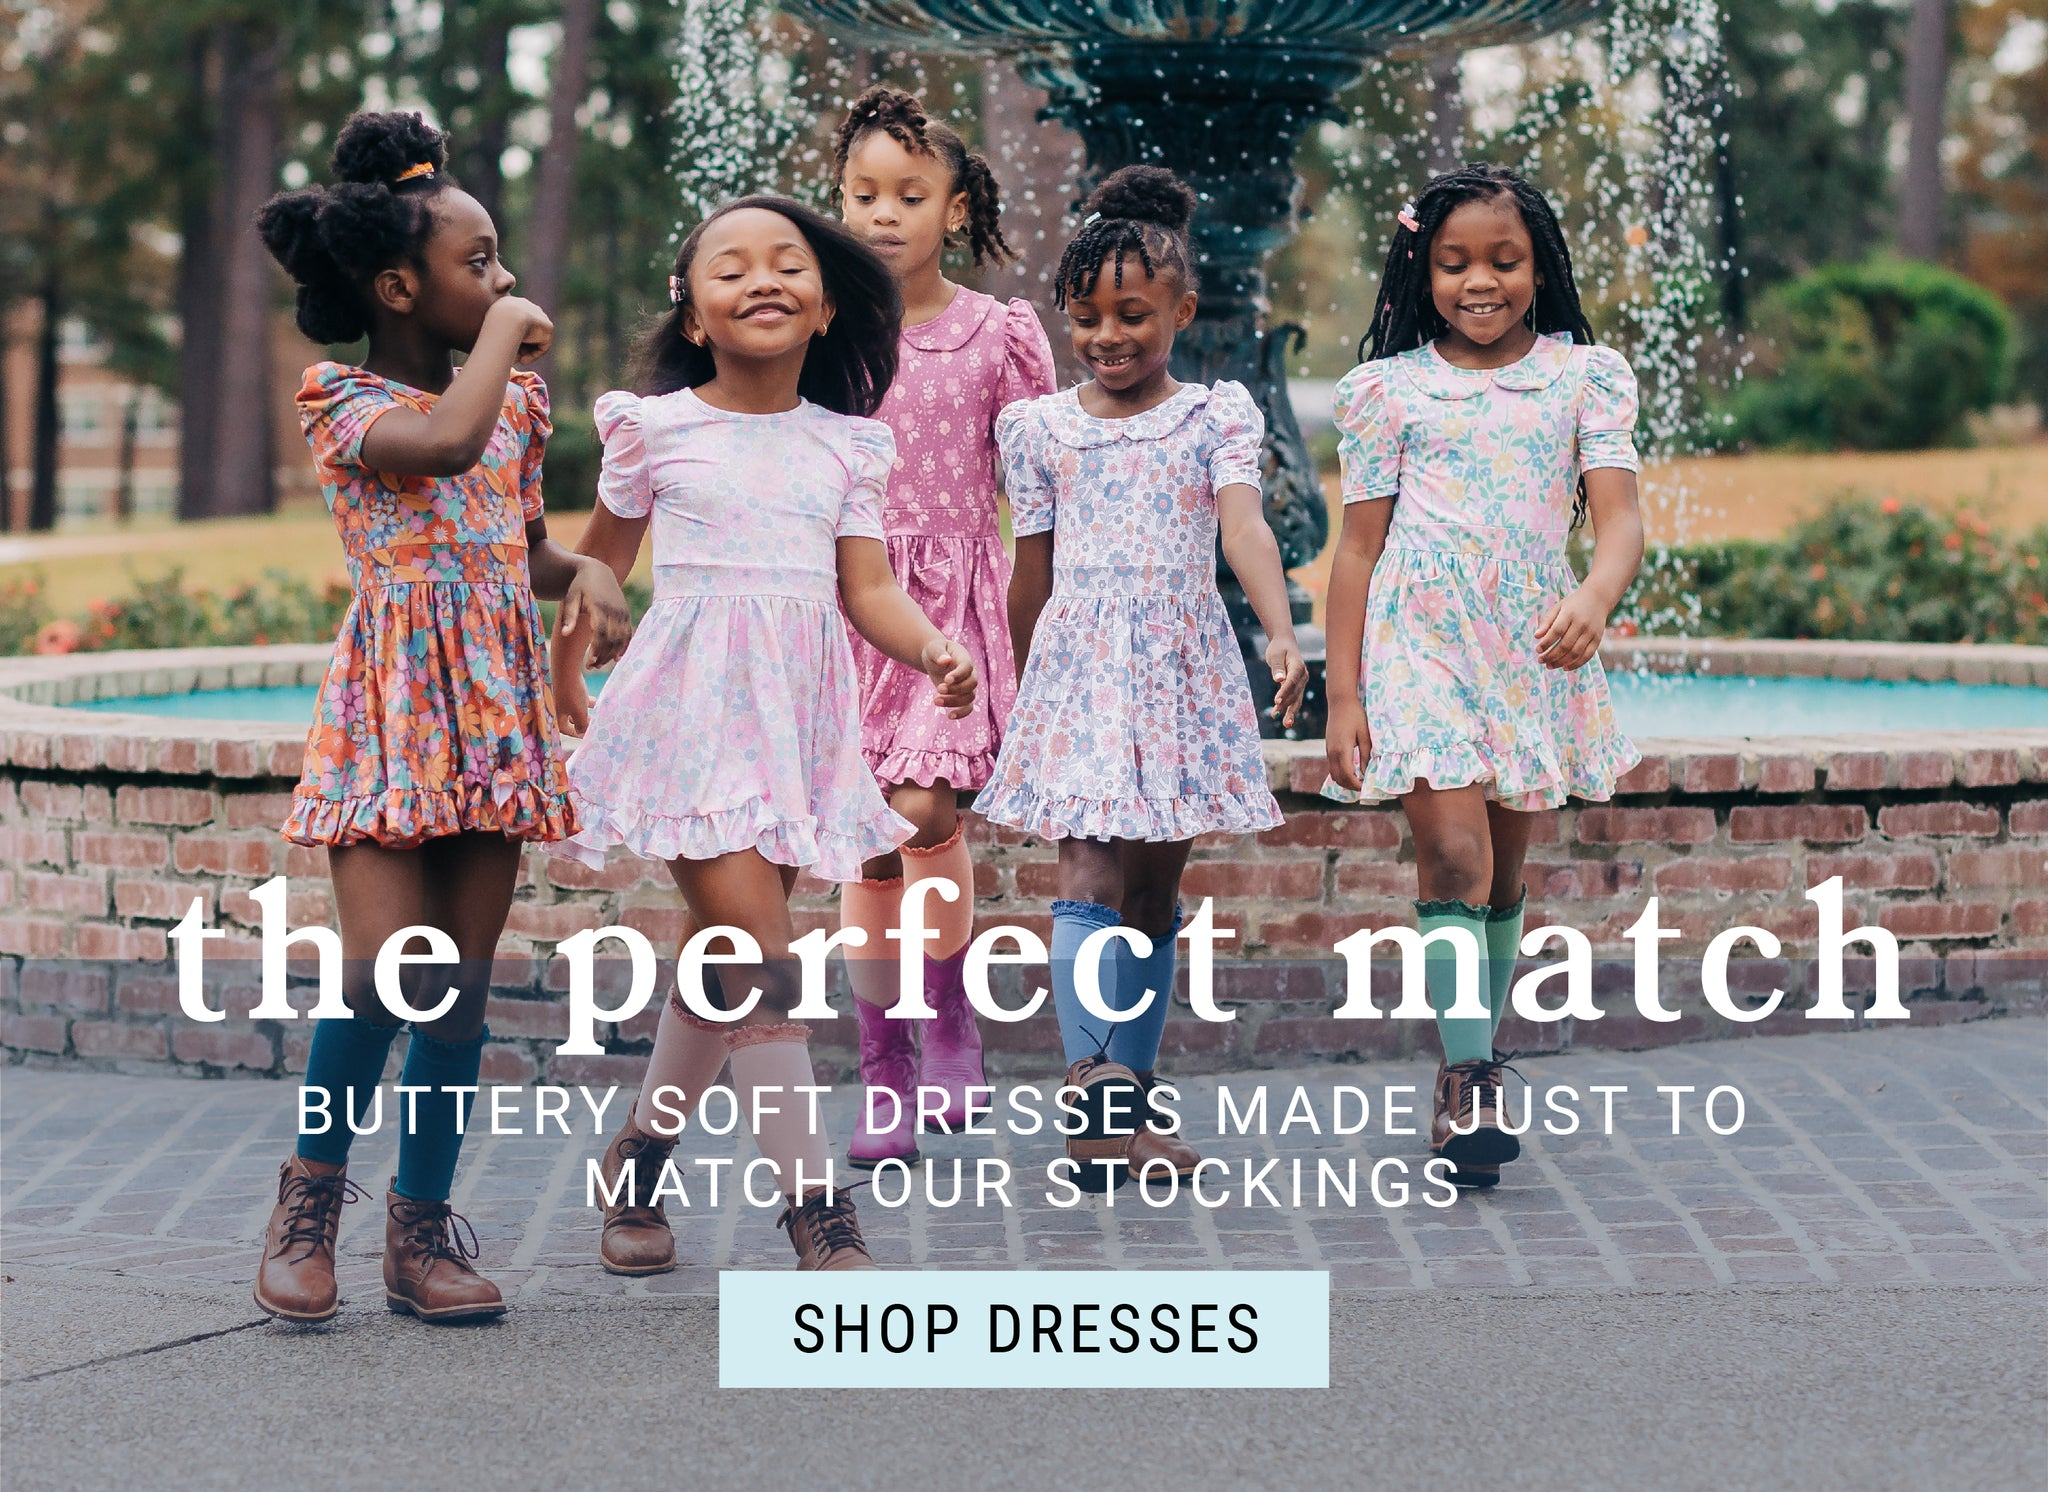 Soft play dresses made to match knee high stockings